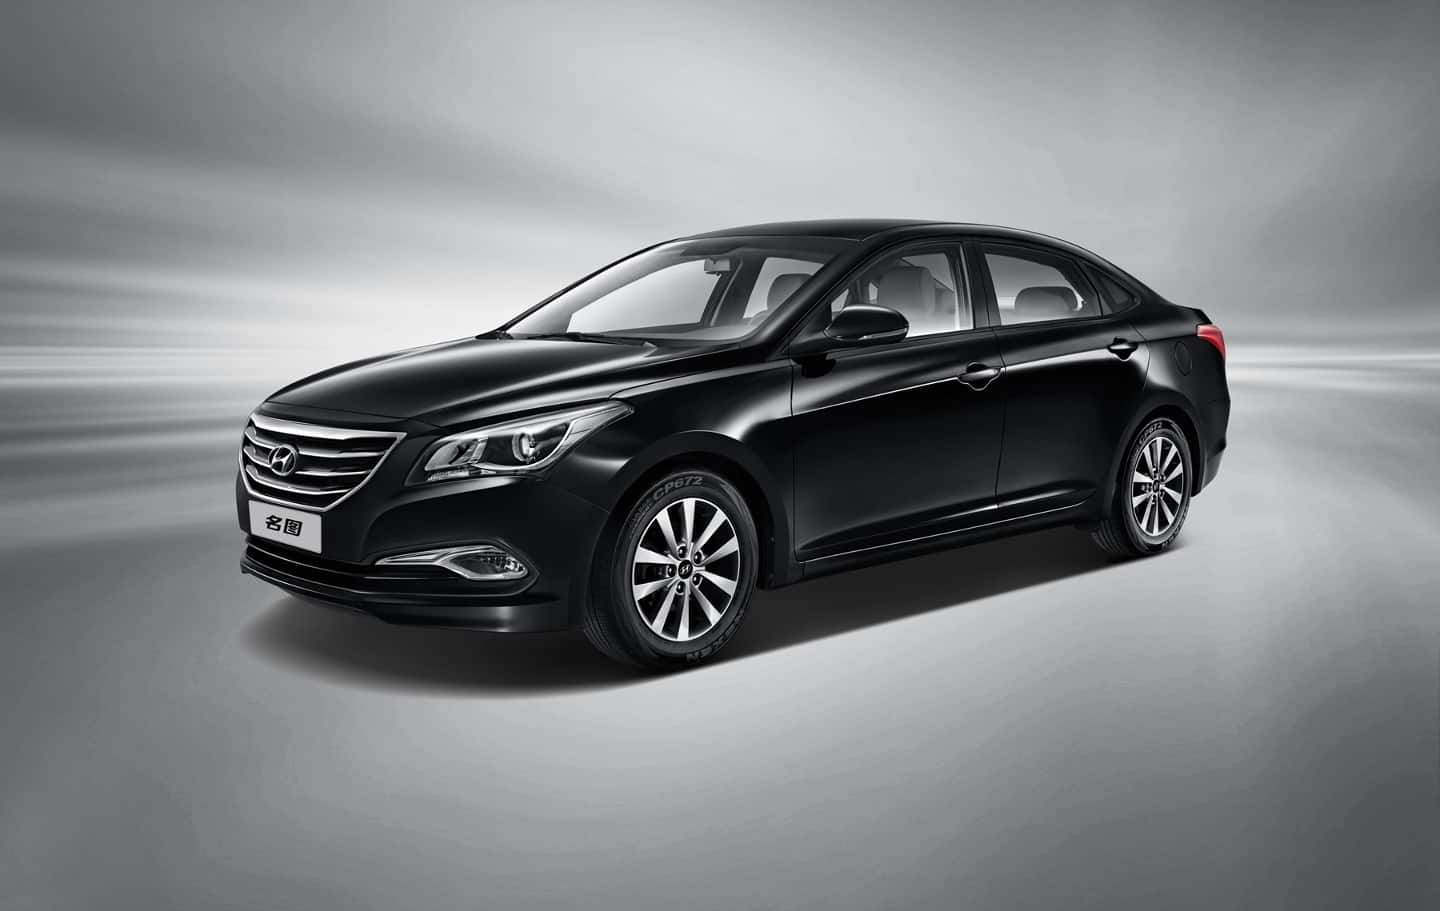 Hyundai Launches China-Exclusive Model 'Mistra'